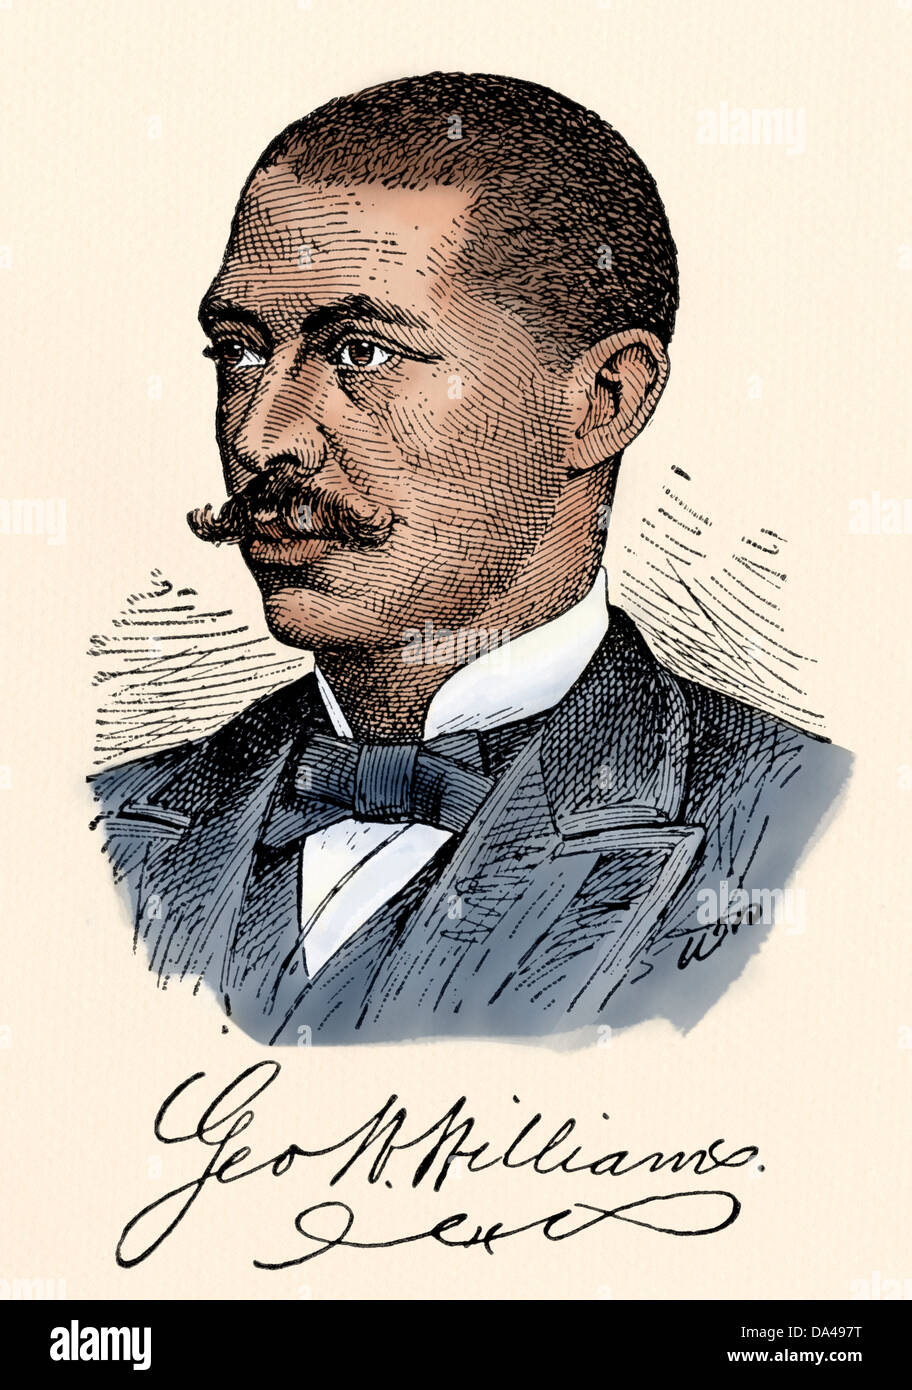 Author George Washington Williams, with his signature. Digitally colored woodcut - Stock Image